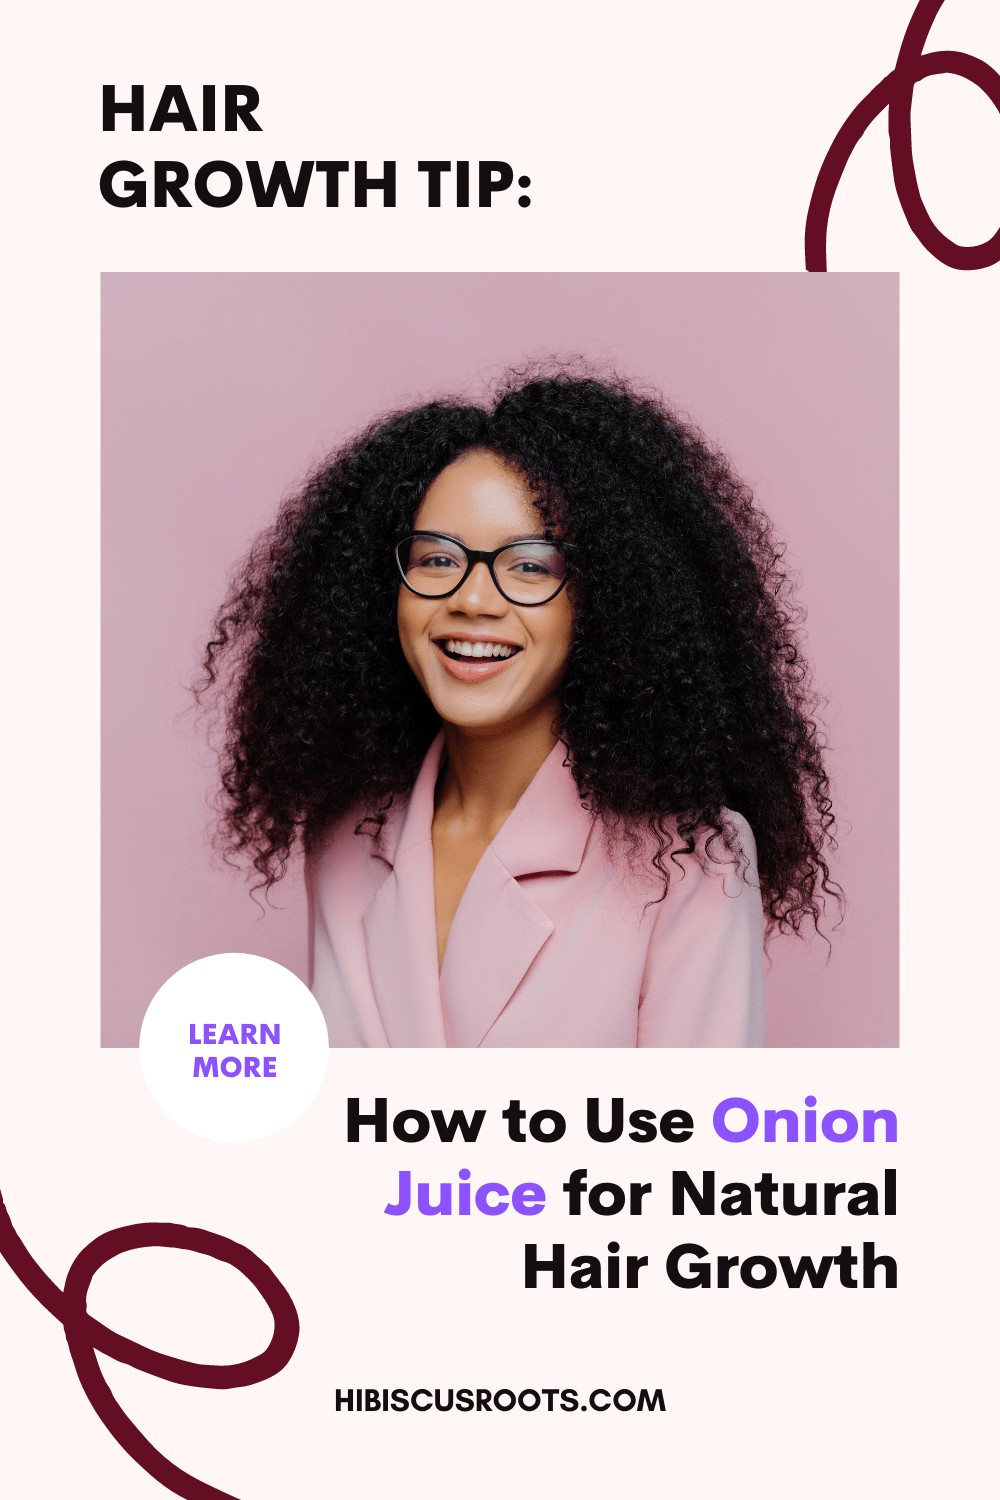 Science-Based Facts about Onion Juice for Hair Growth